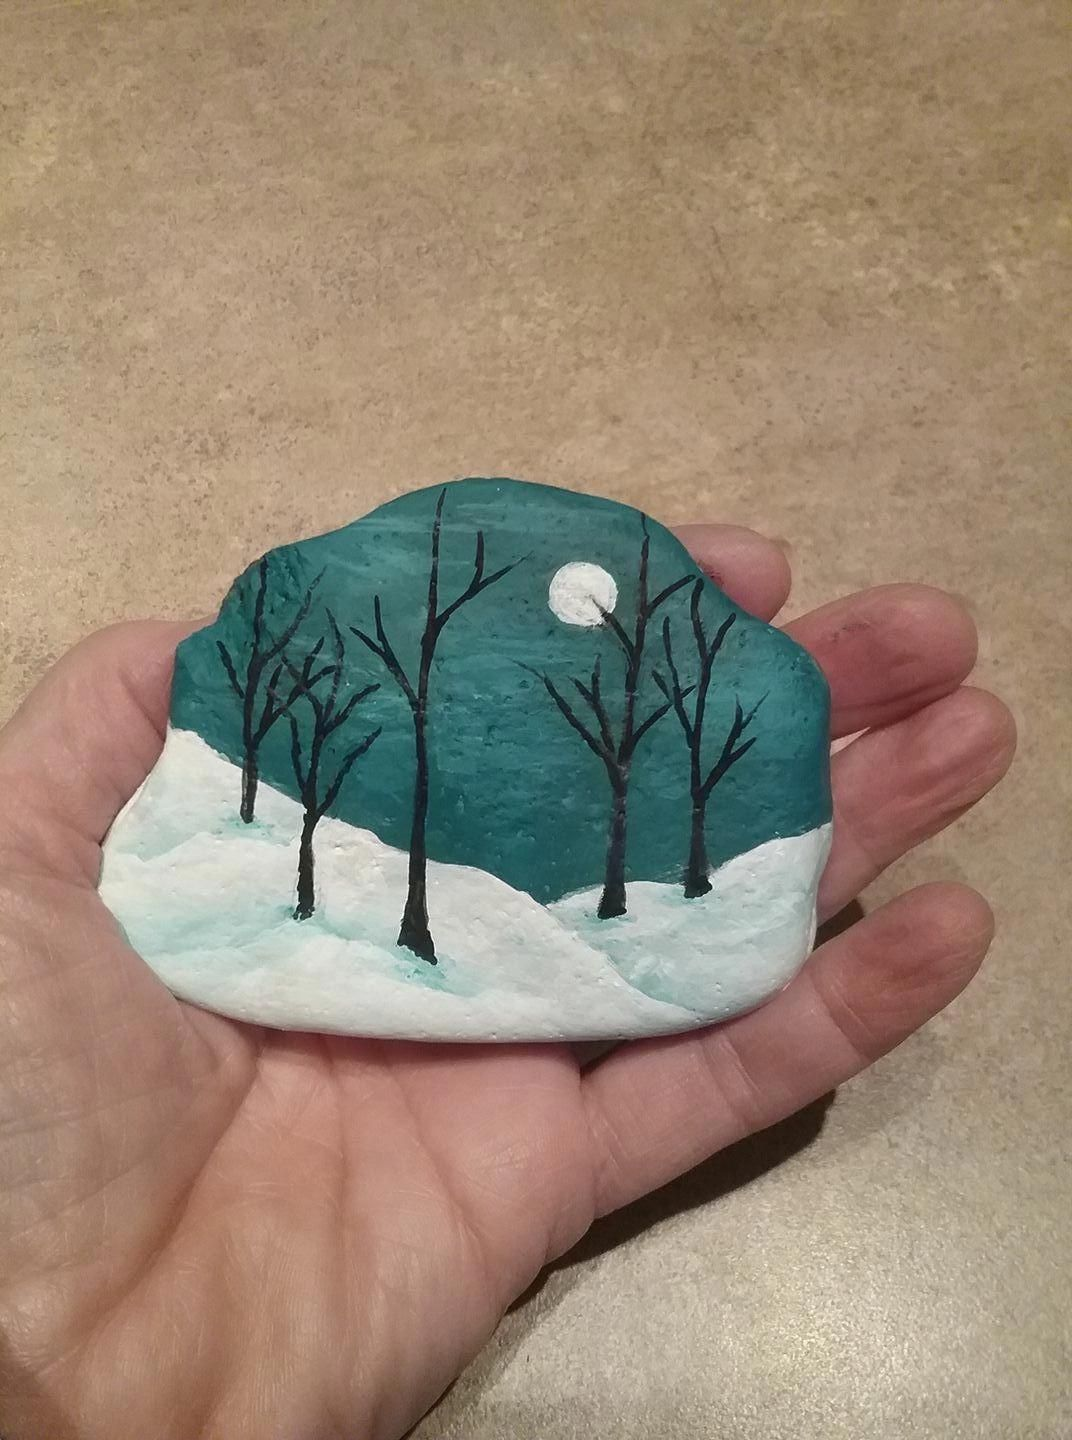 15 Fantastic Ideas Easy Rock Painting Ideas For Beginners Strongdaily Net Painted Rocks Rock Painting Ideas Easy Painted Rocks Diy